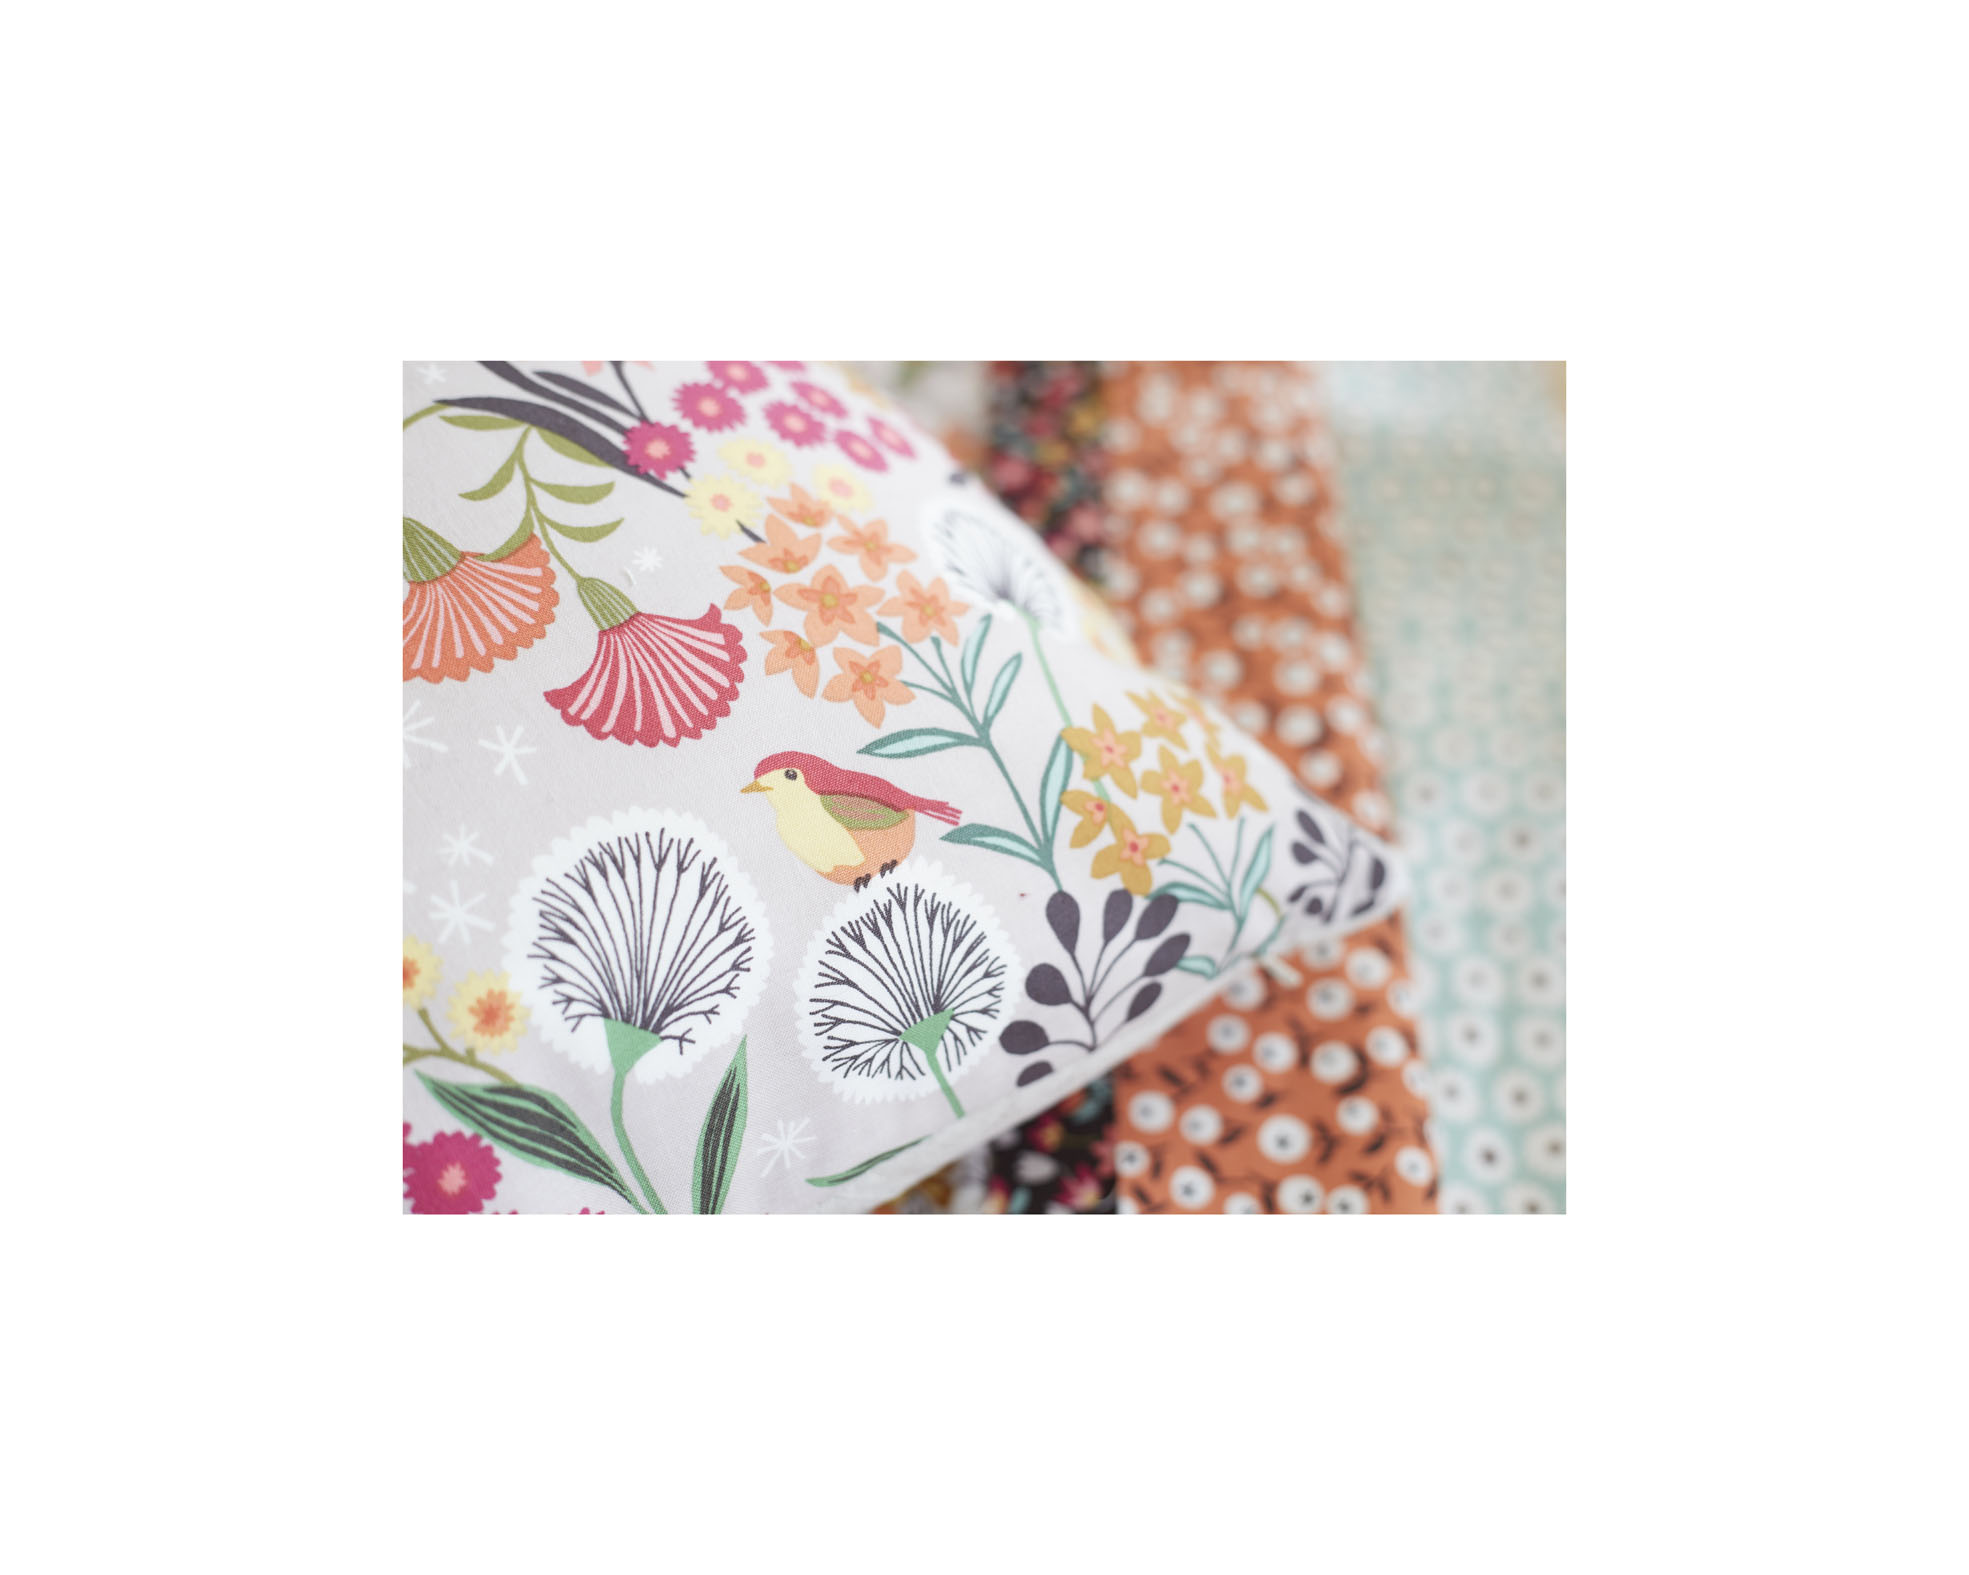 Fabric Collection for  Dashwood Studio    © Brie Harrison 2015